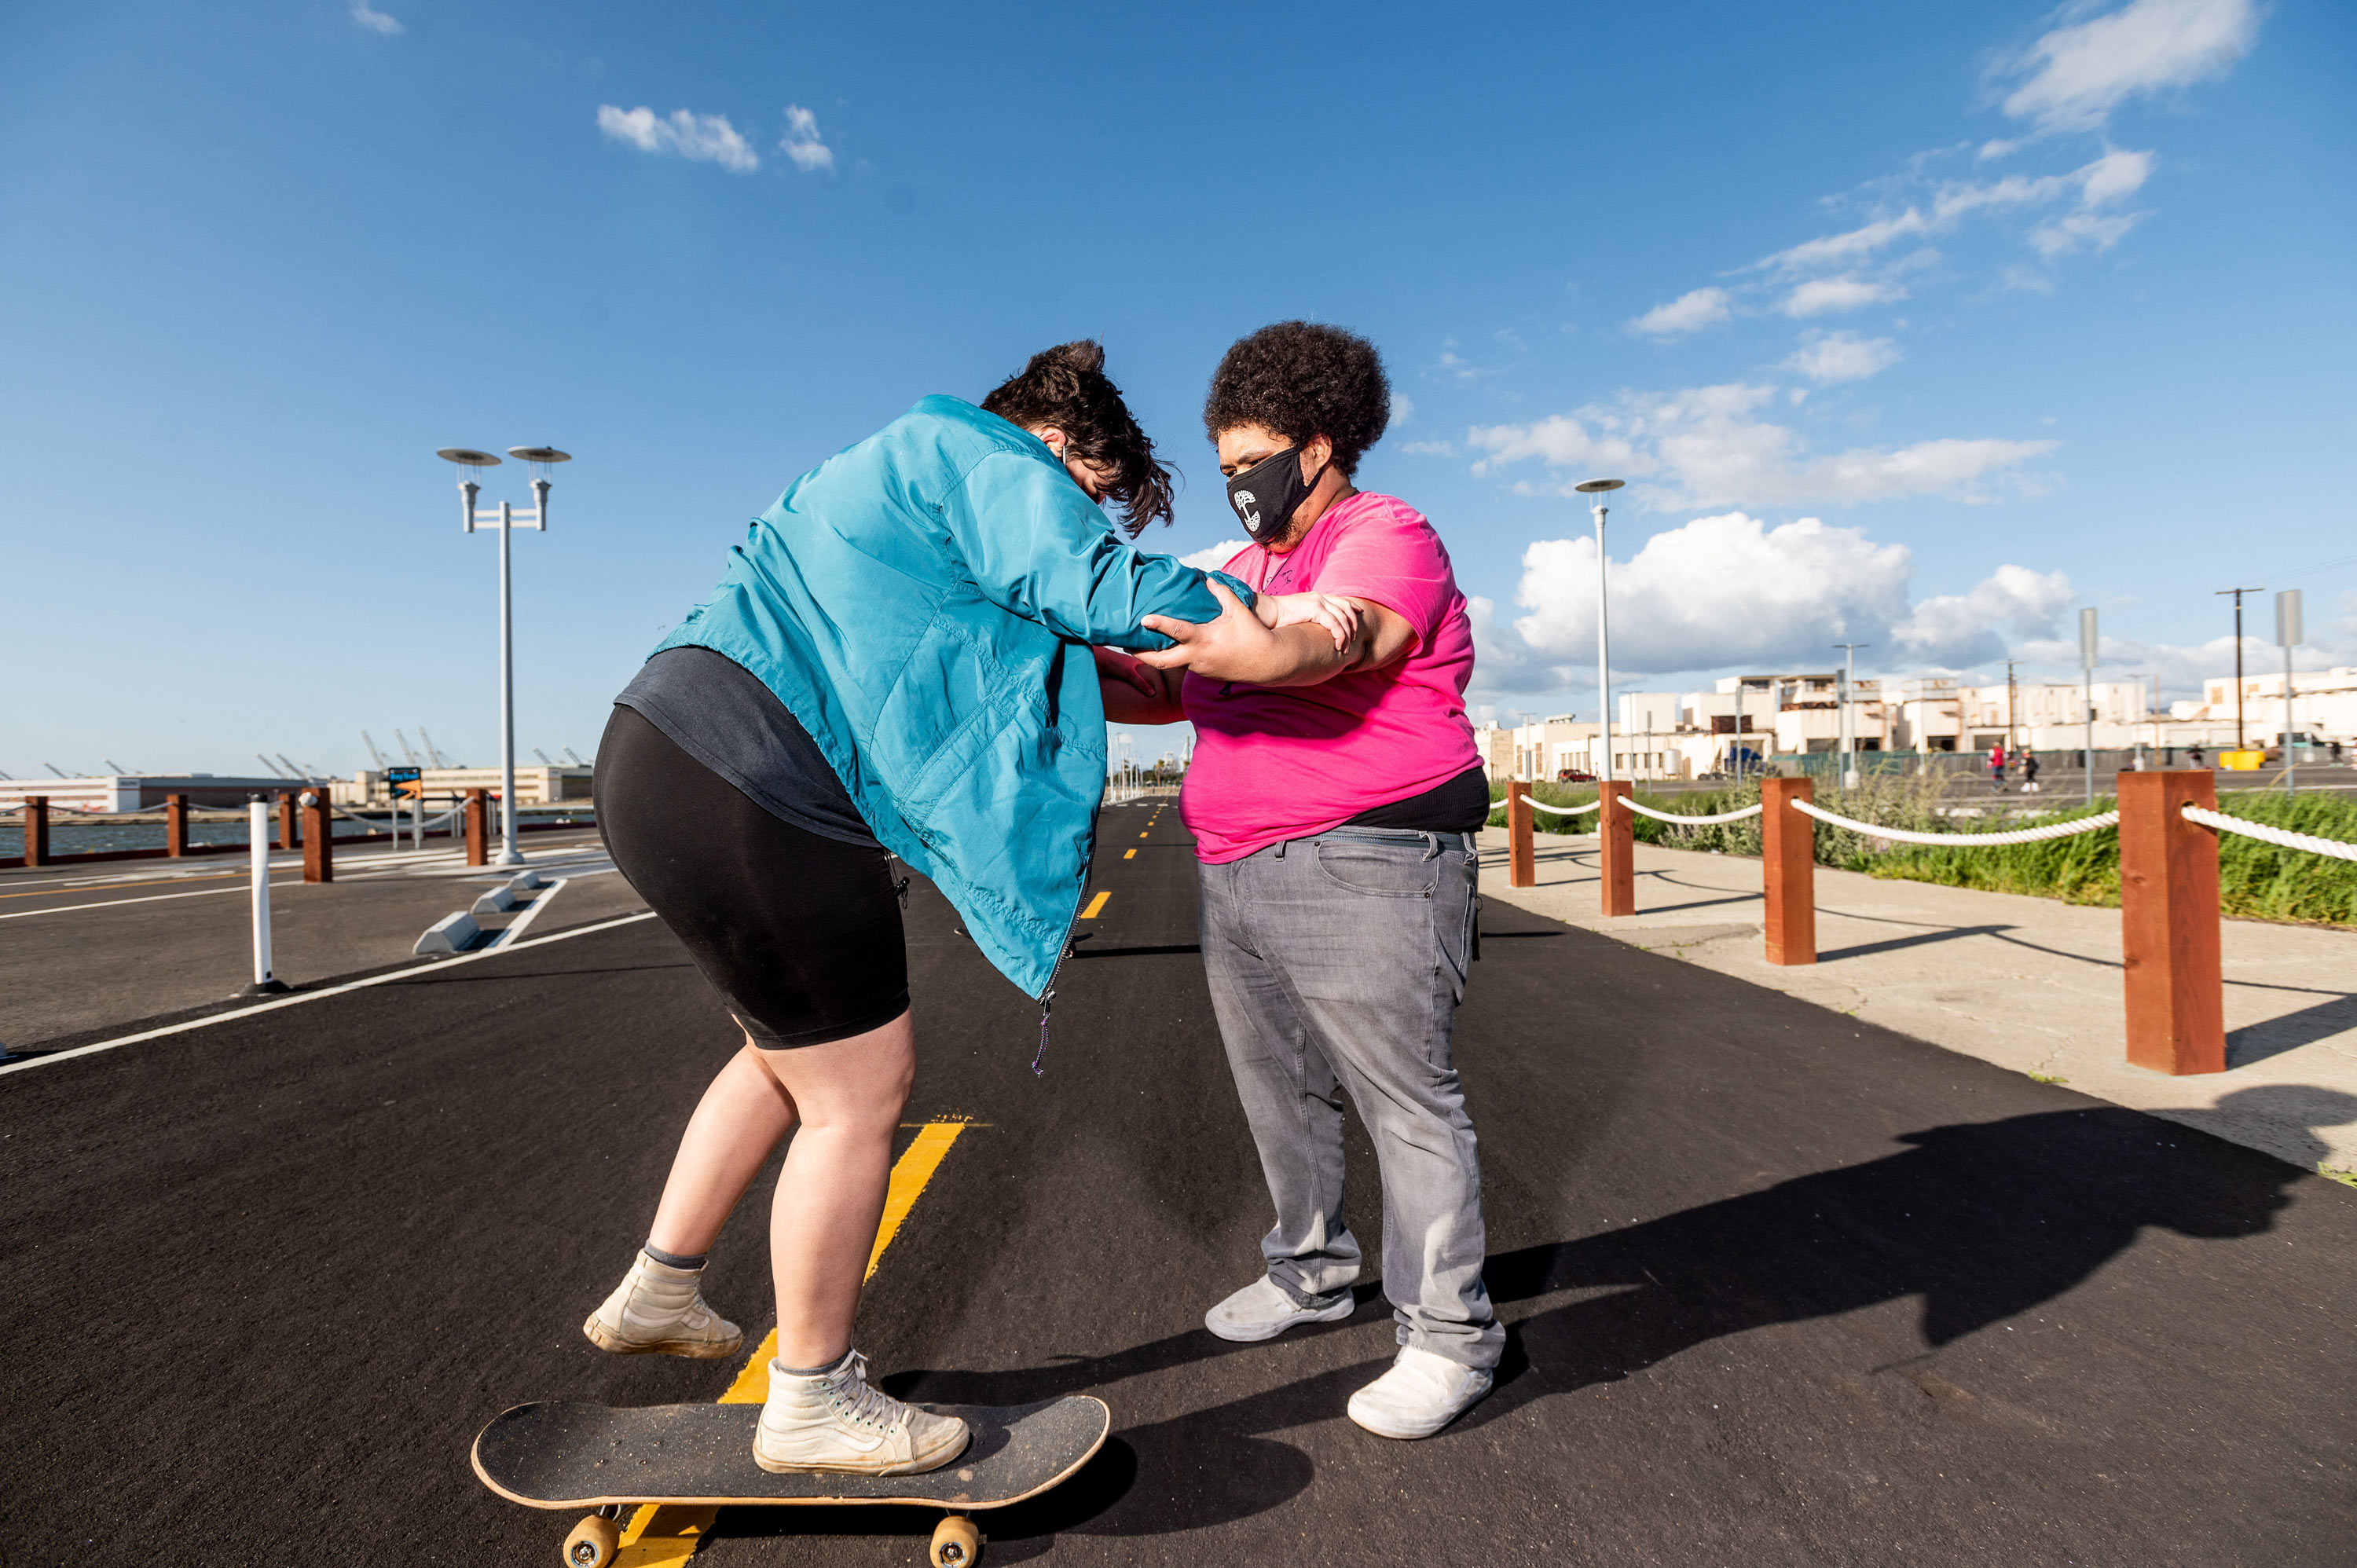 This skateboarder is helping plus-size riders roll